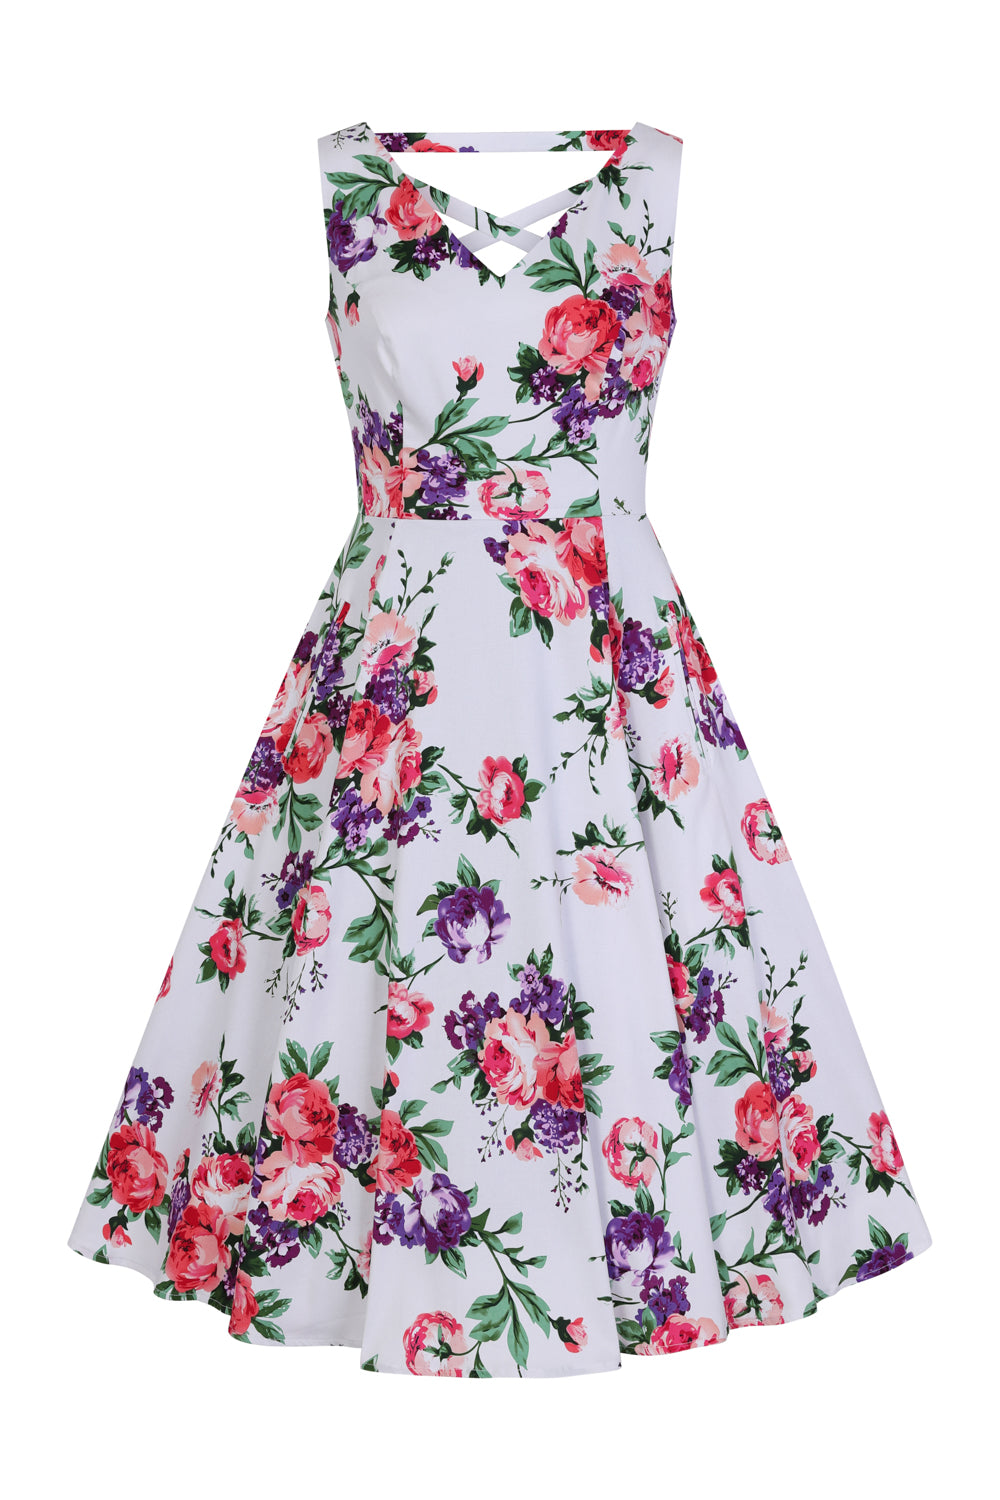 Molly Rose Swing Dress by Hearts & Roses